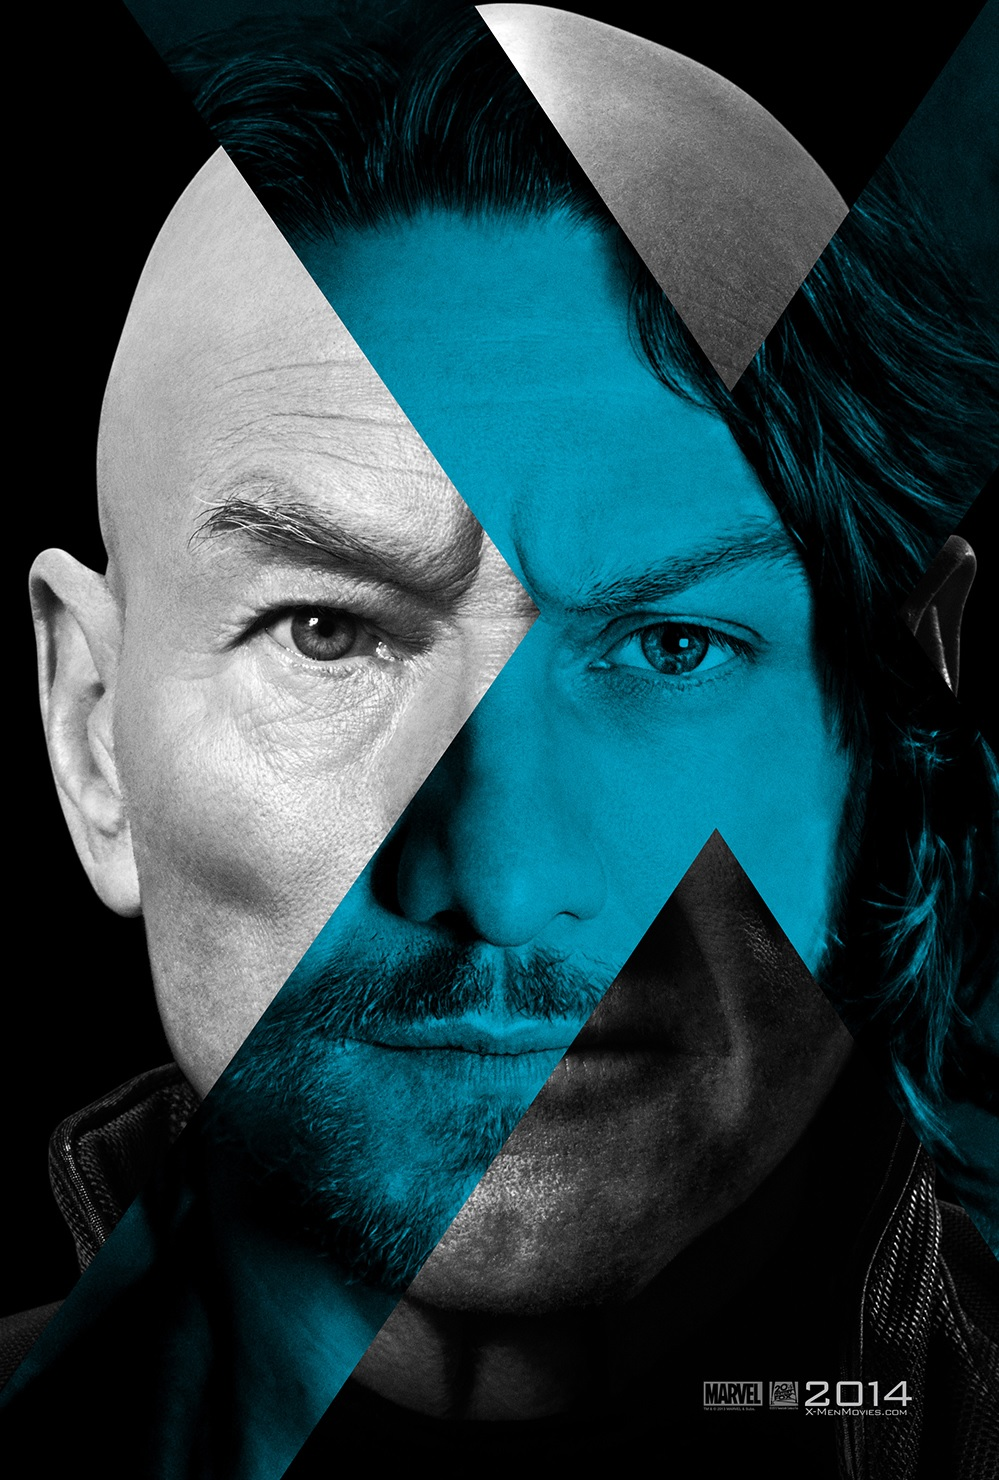 x men days of future past The Third and Final X Men: Days of Future Past Trailer Released